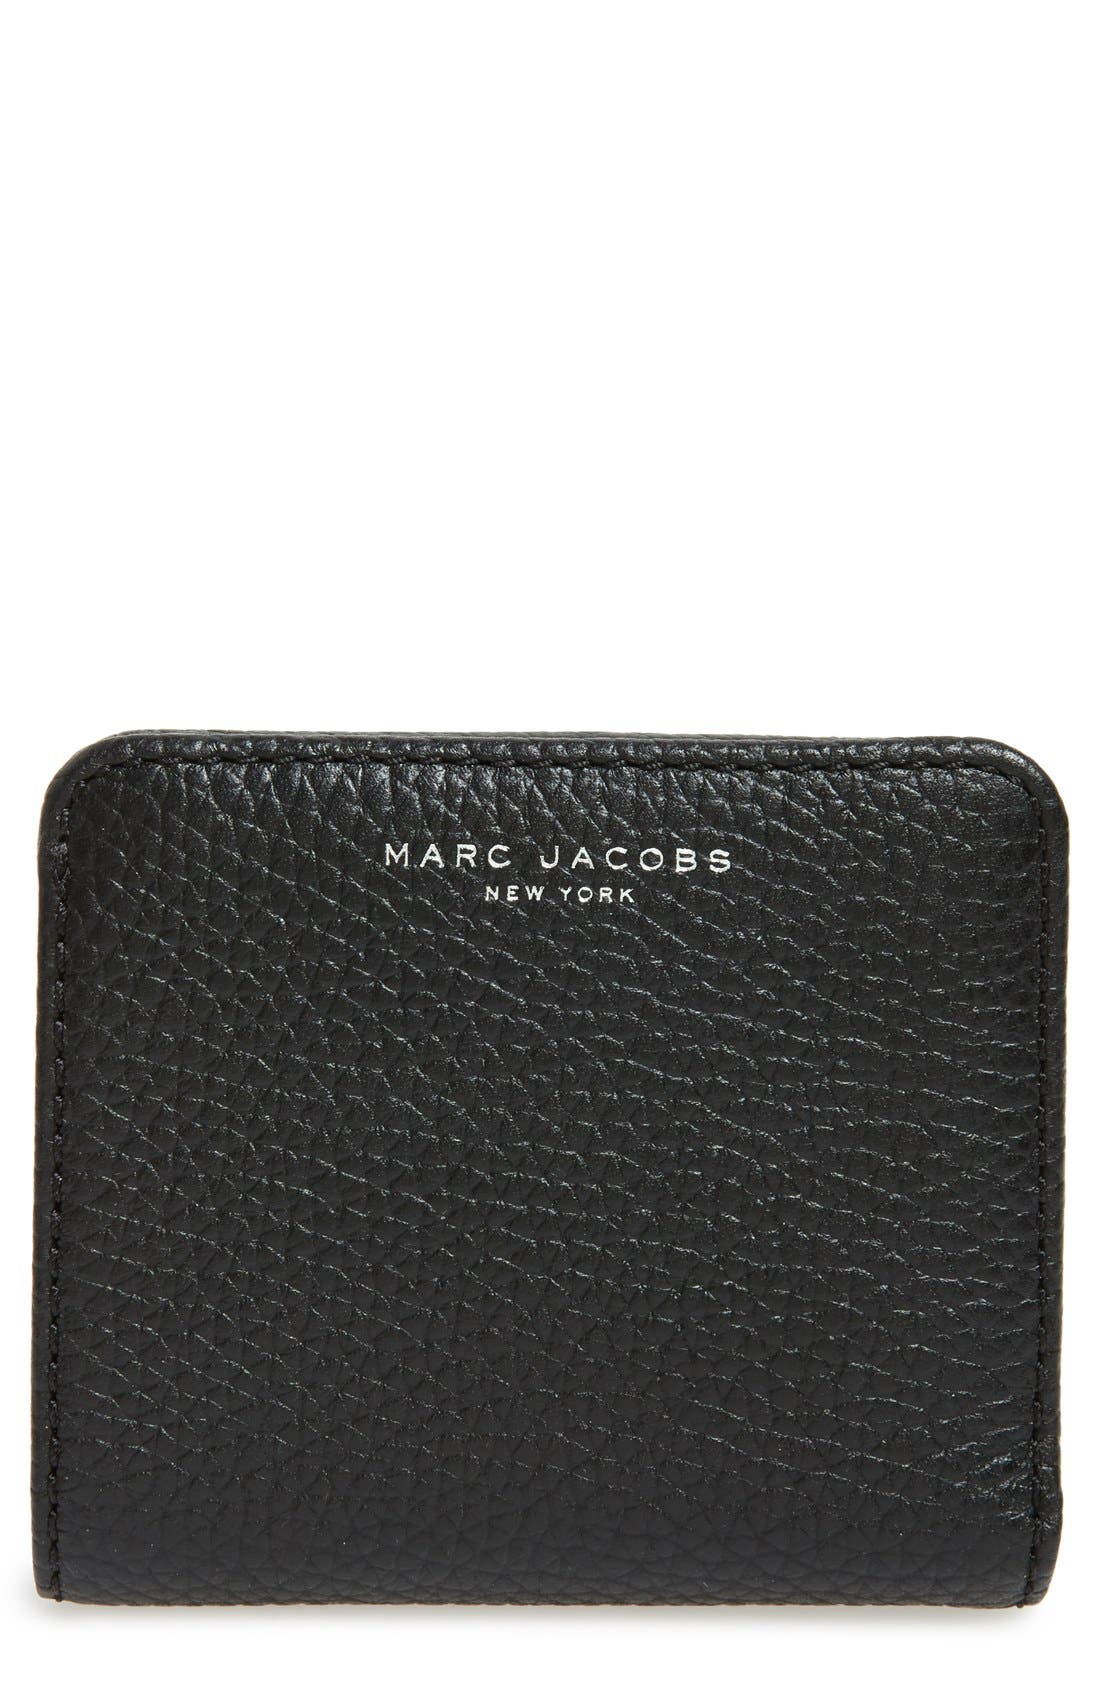 MARC JACOBS 'Gotham' Pebbled Leather Wallet